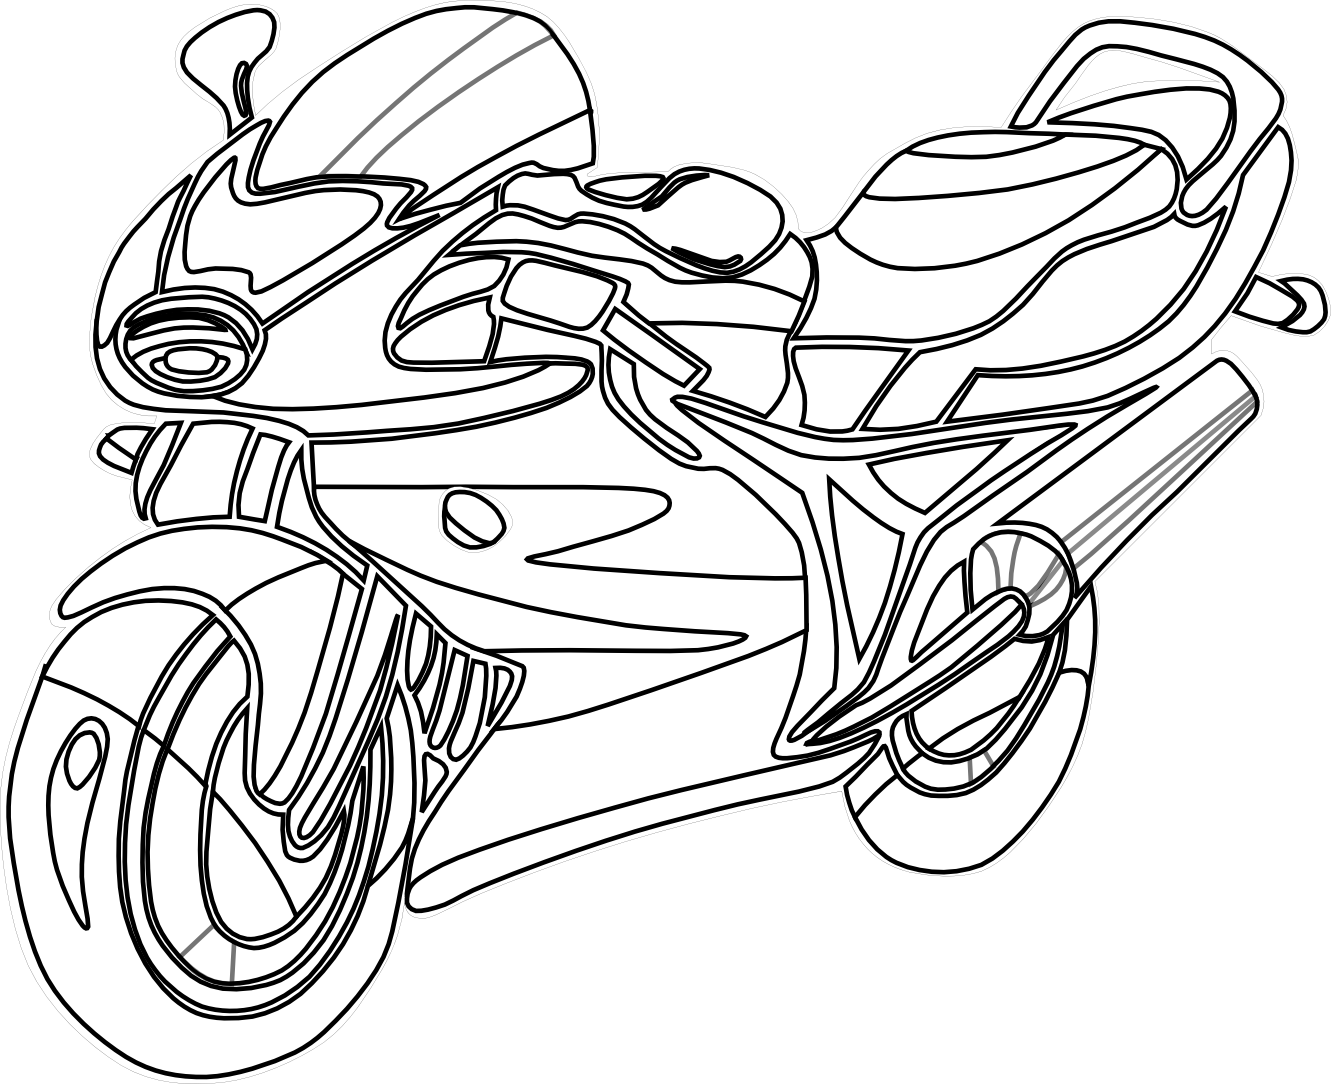 White clipart motorcycle. Black and panda free